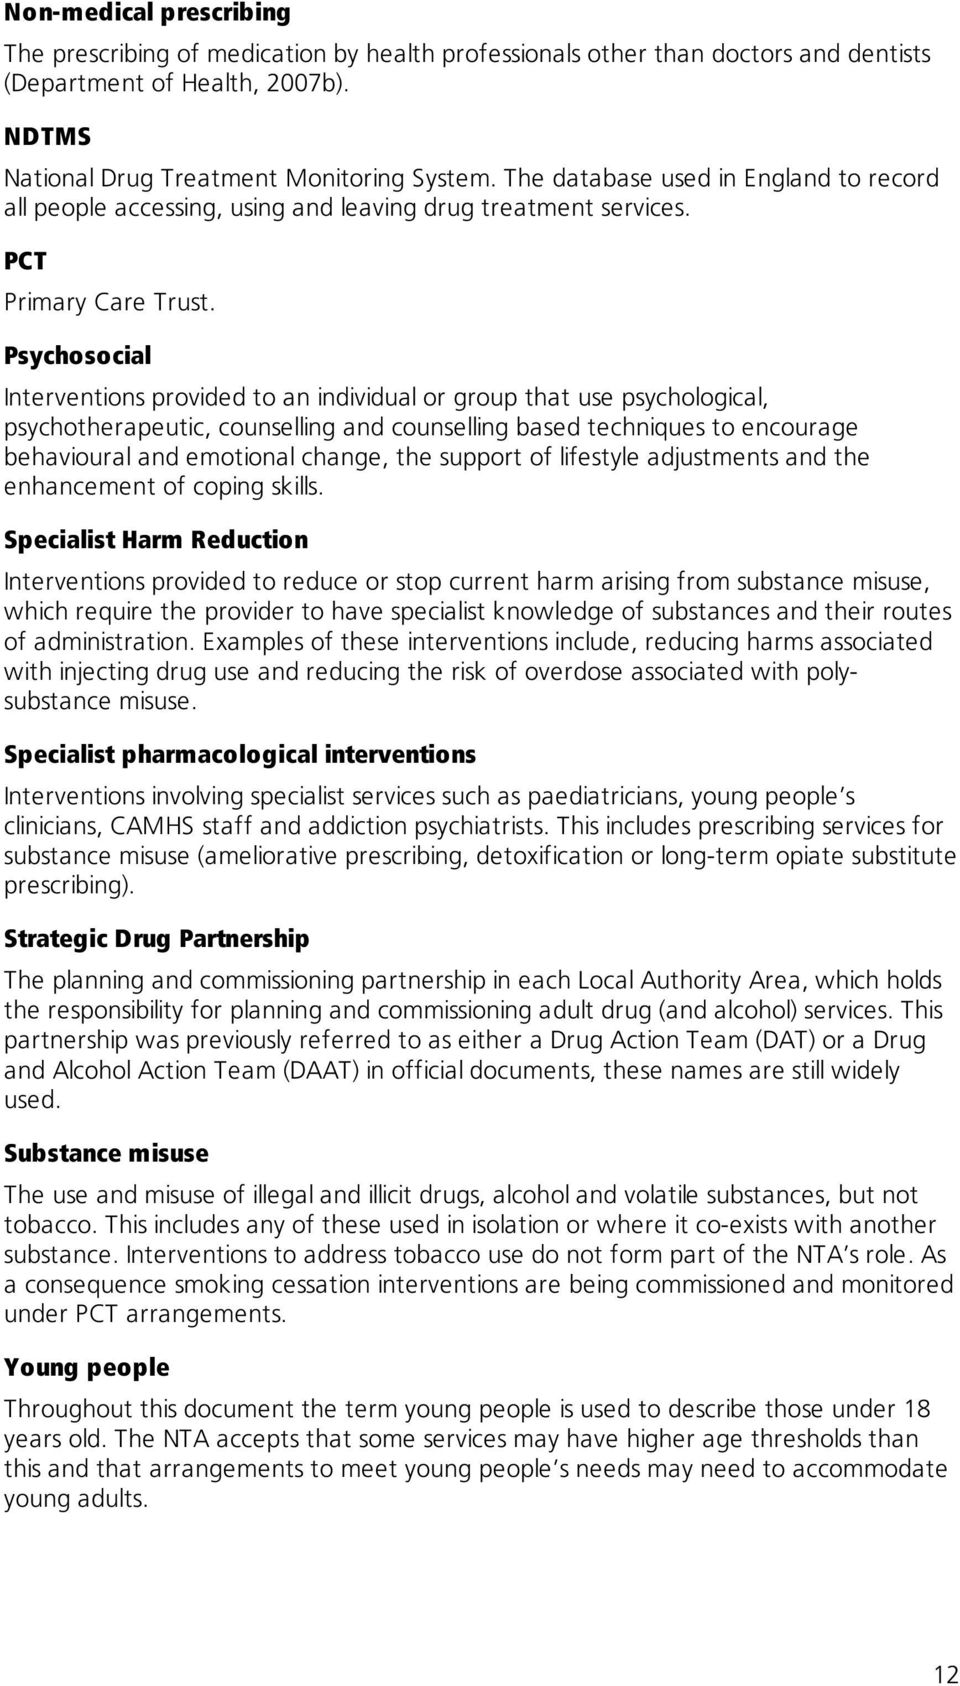 Psychosocial Interventions provided to an individual or group that use psychological, psychotherapeutic, counselling and counselling based techniques to encourage behavioural and emotional change,